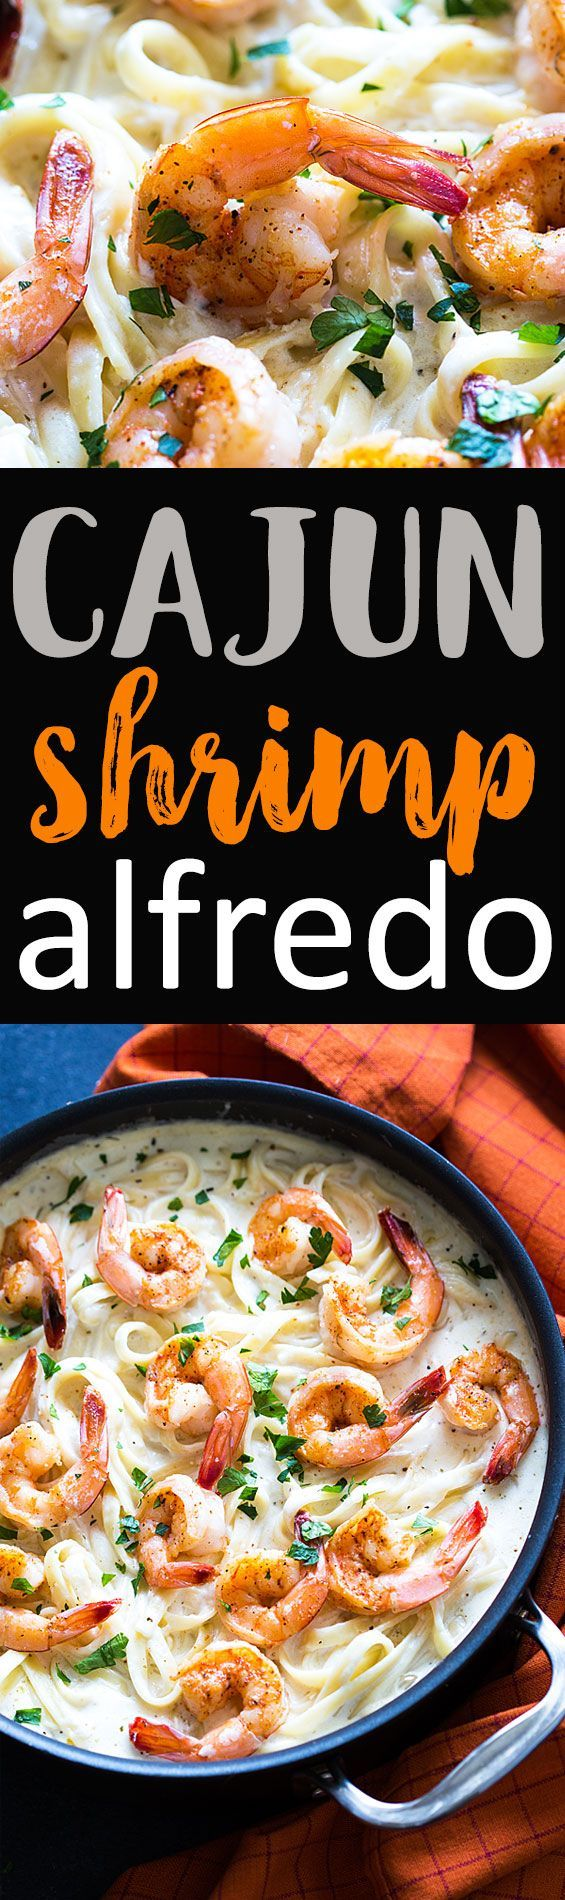 Cajun Shrimp Alfredo - So simple! Cajun shrimp in a bed of pasta with creamy, cheesy alfredo sauce. Just 20 minutes is all it takes!